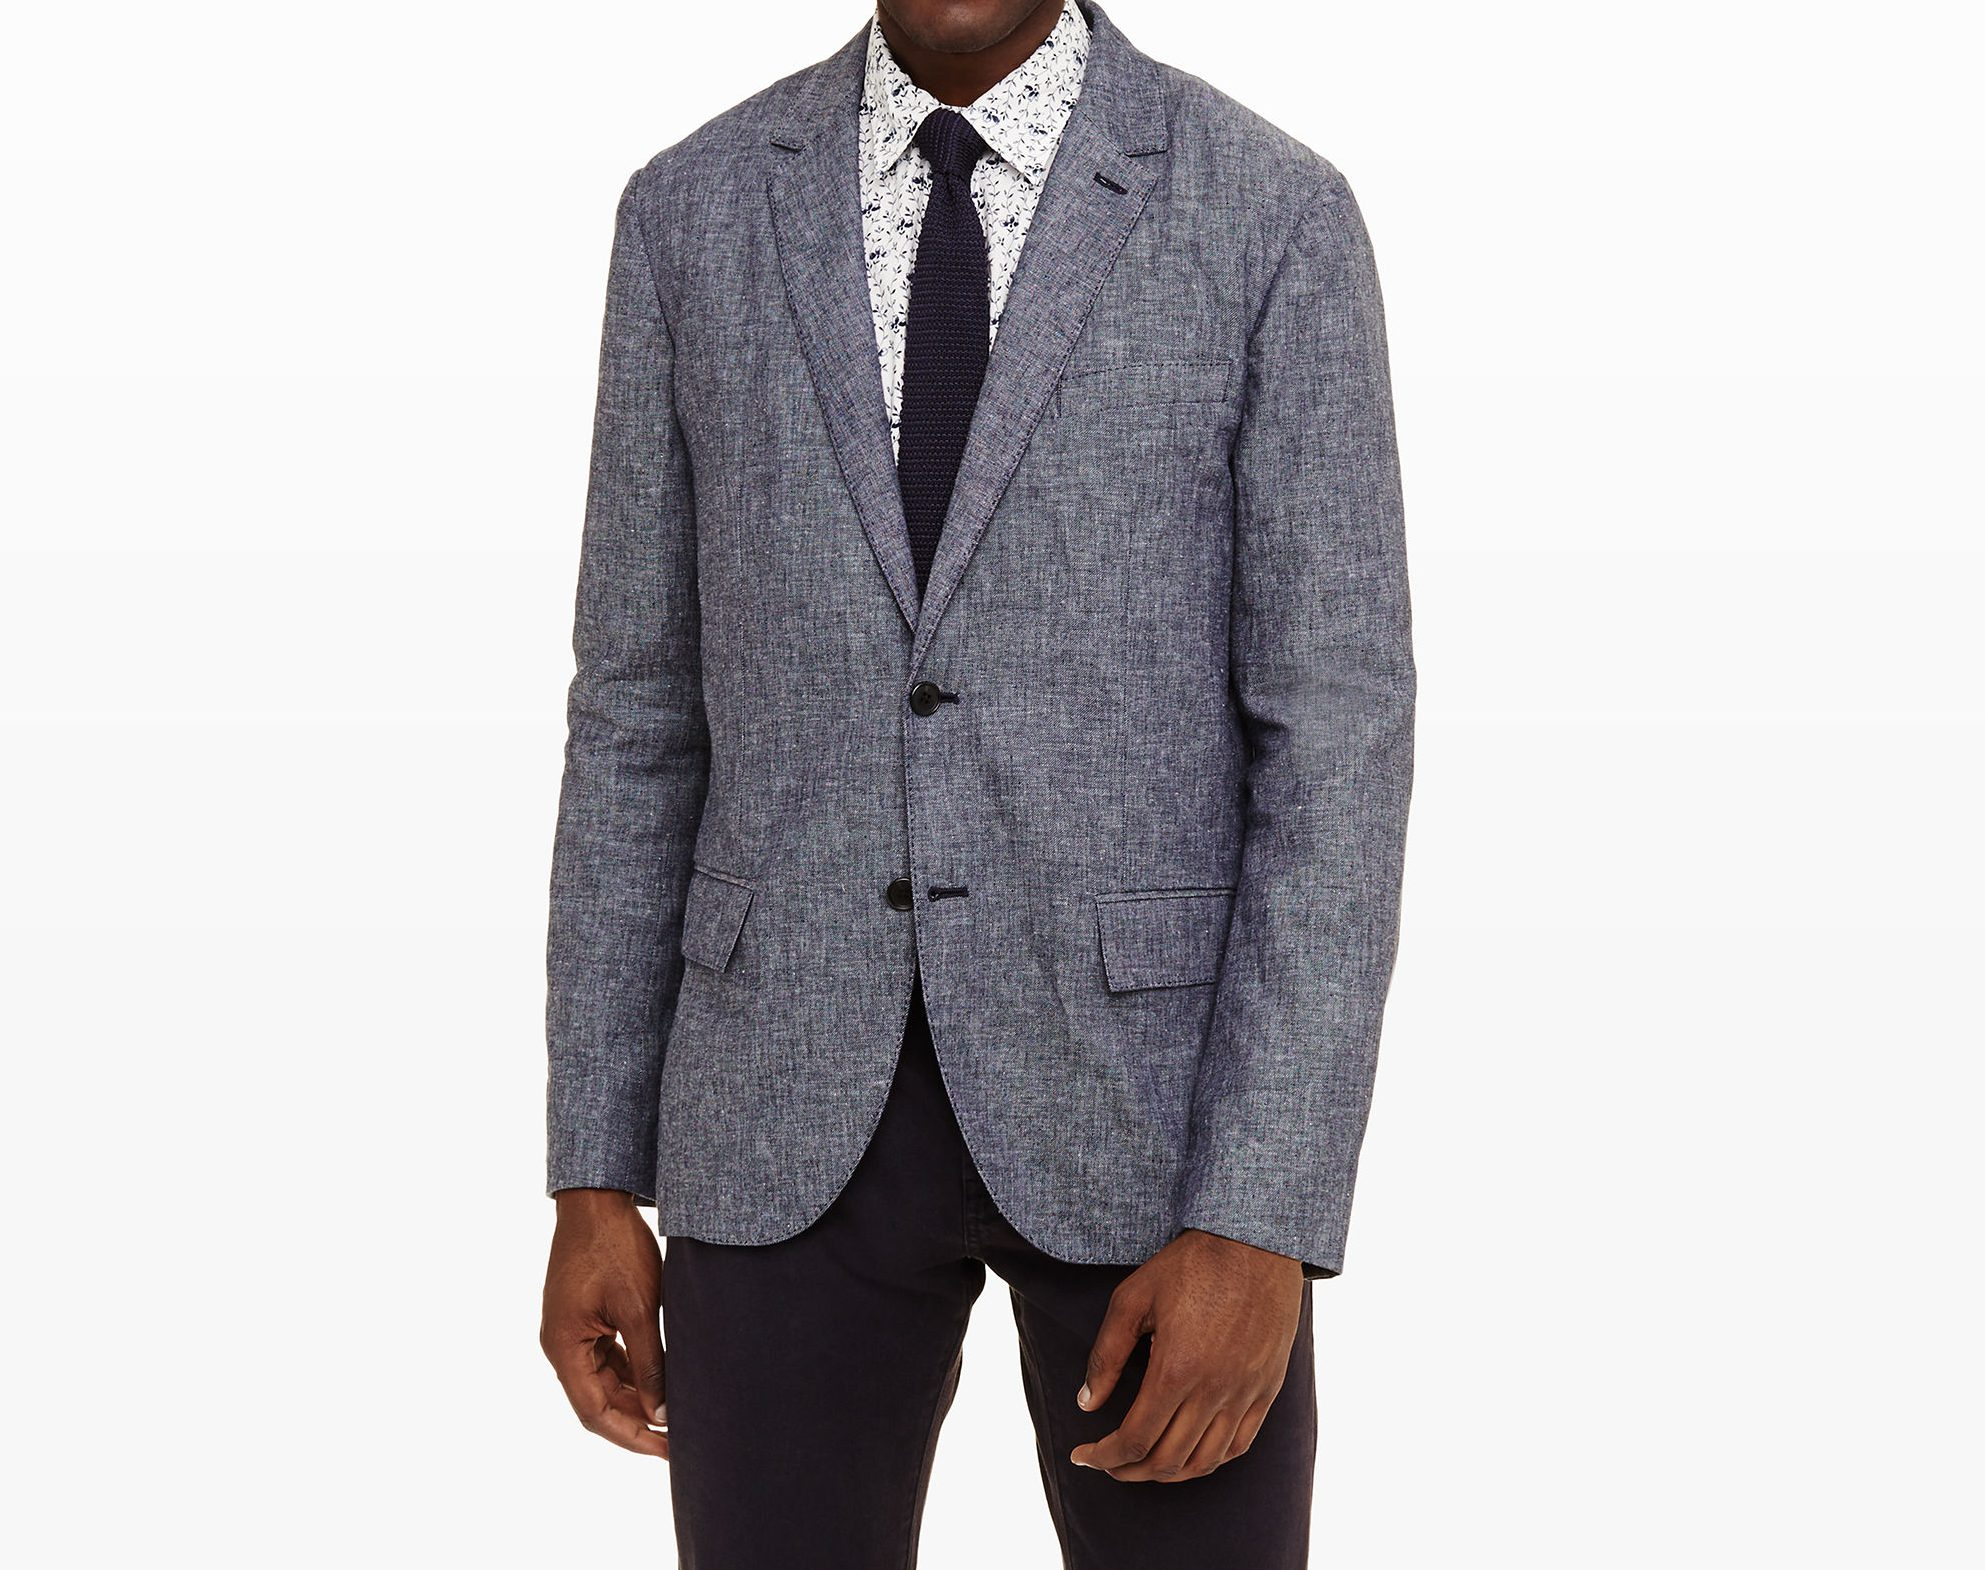 dapper-advisor-affordable-spring-summer-blazers-1